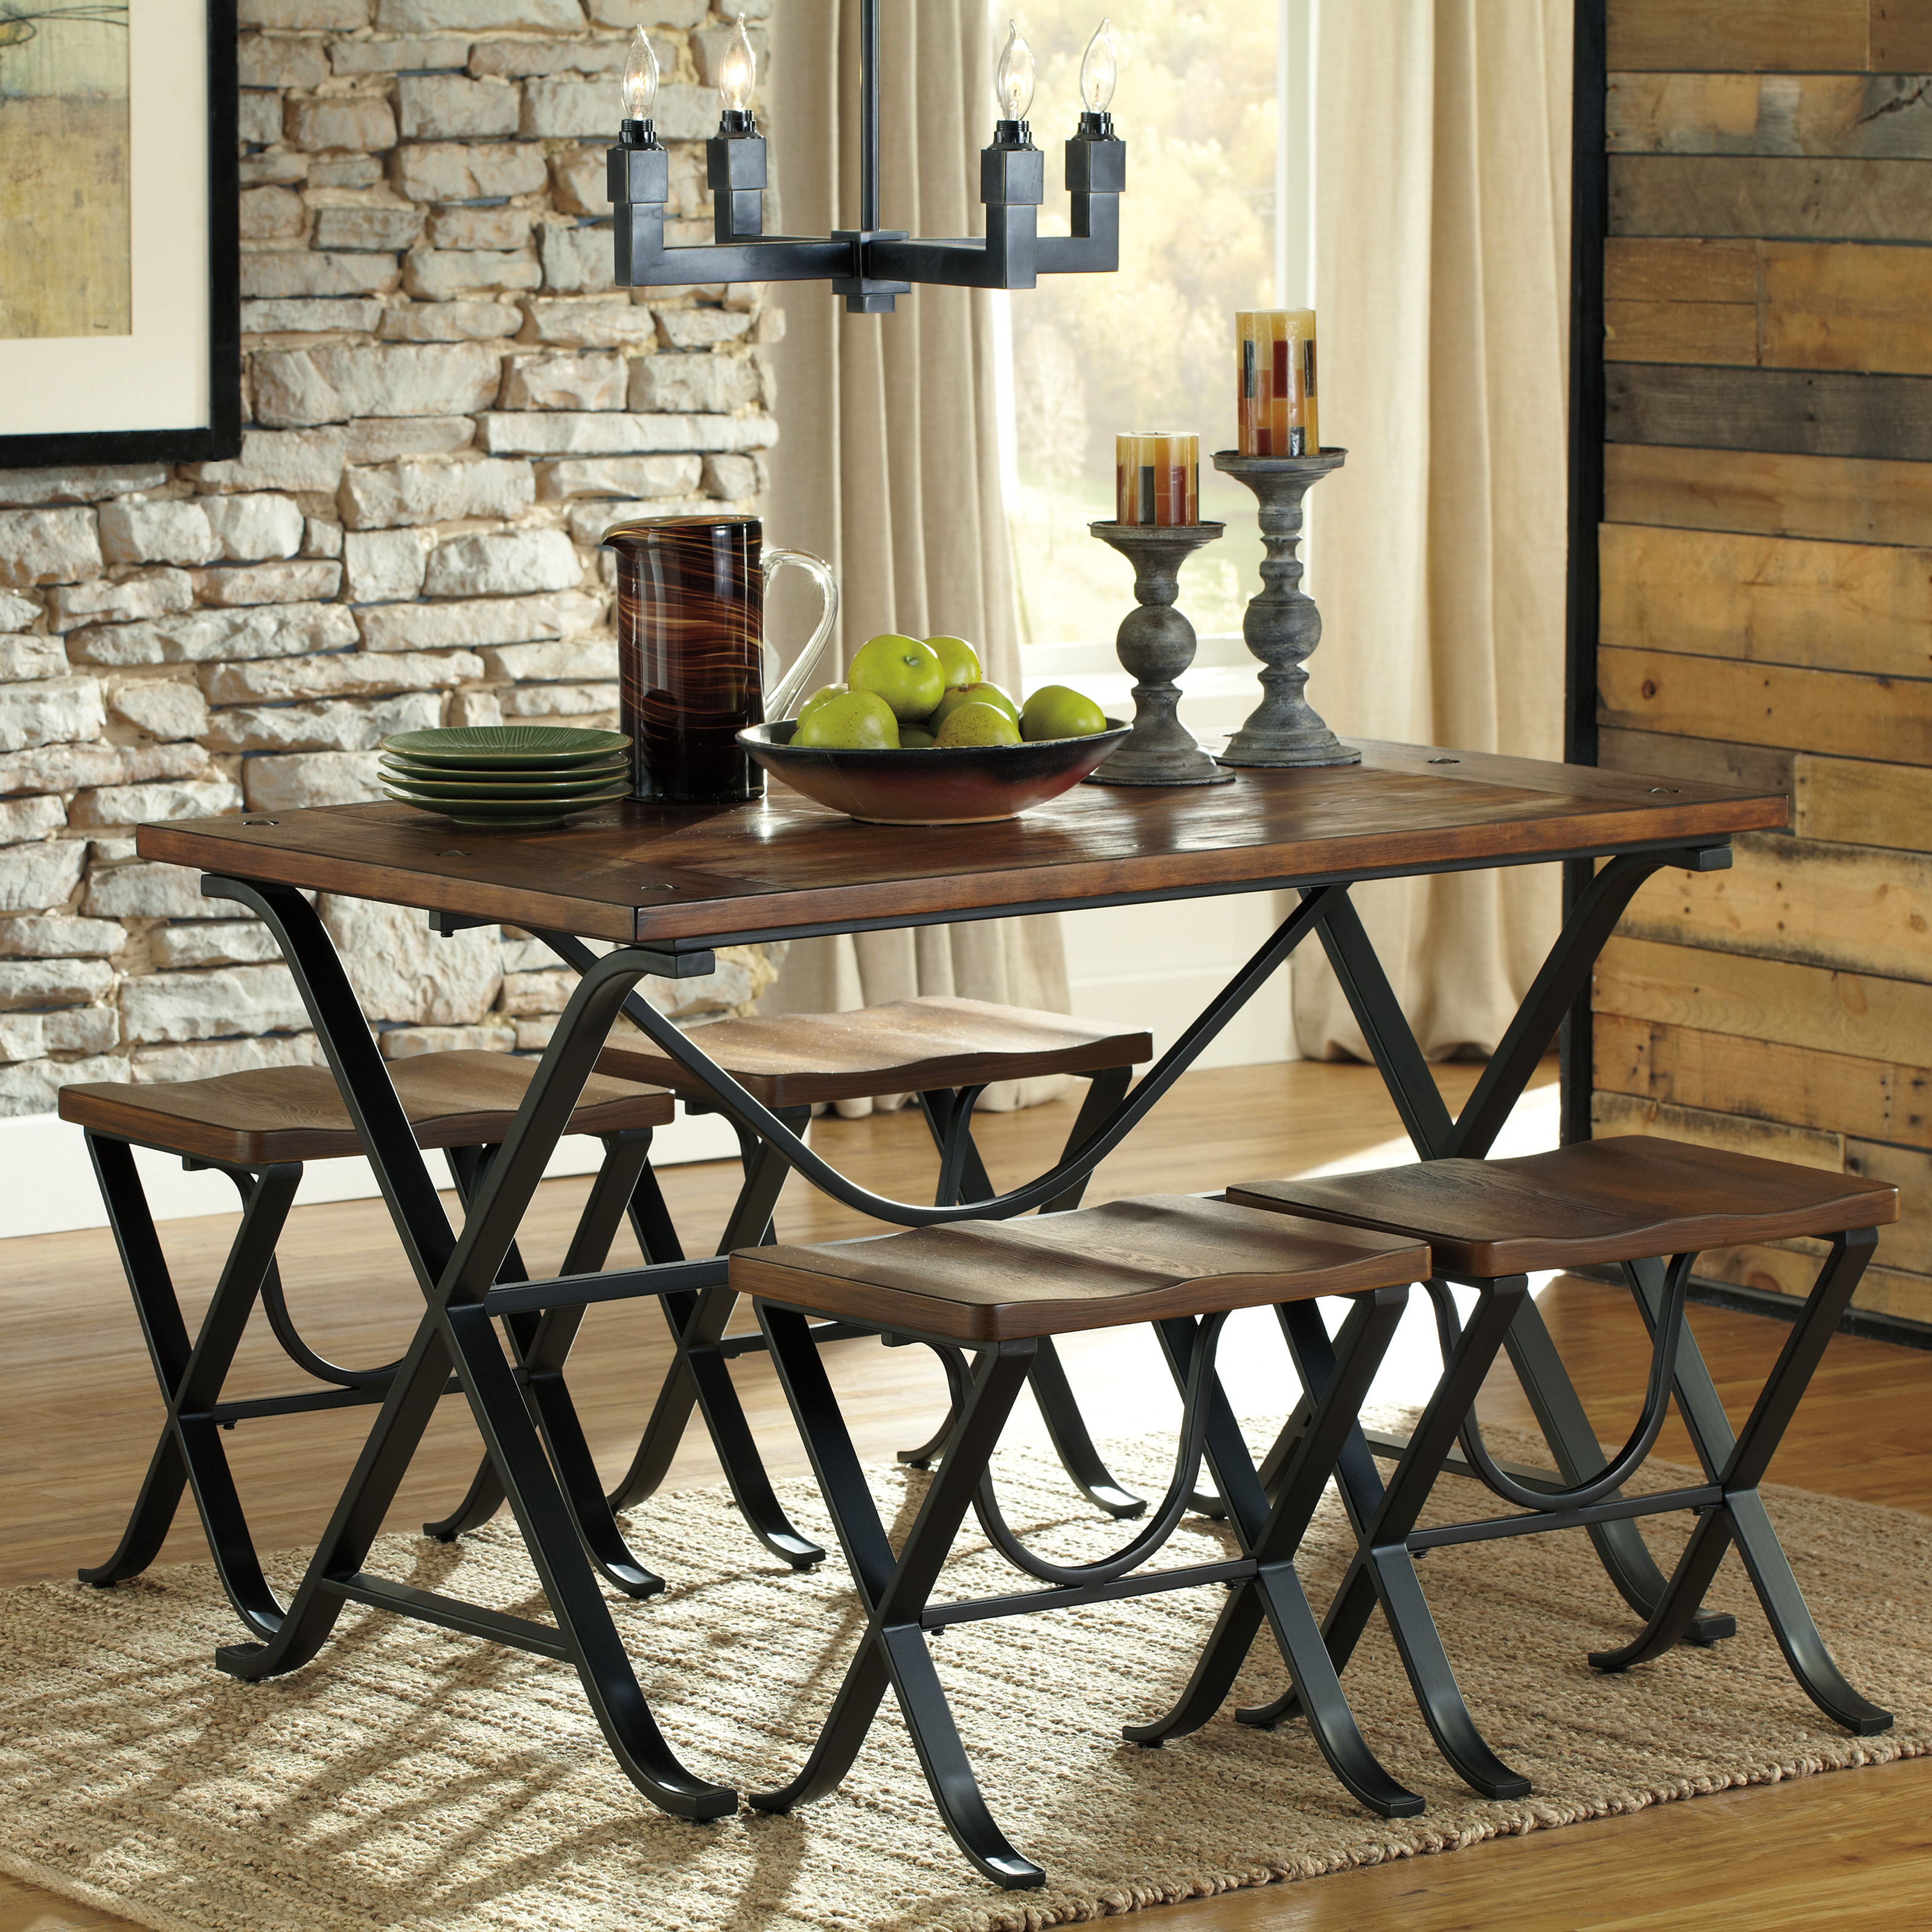 Signature Design by Ashley Freimore 5 Piece Rectangular Dining Table ...